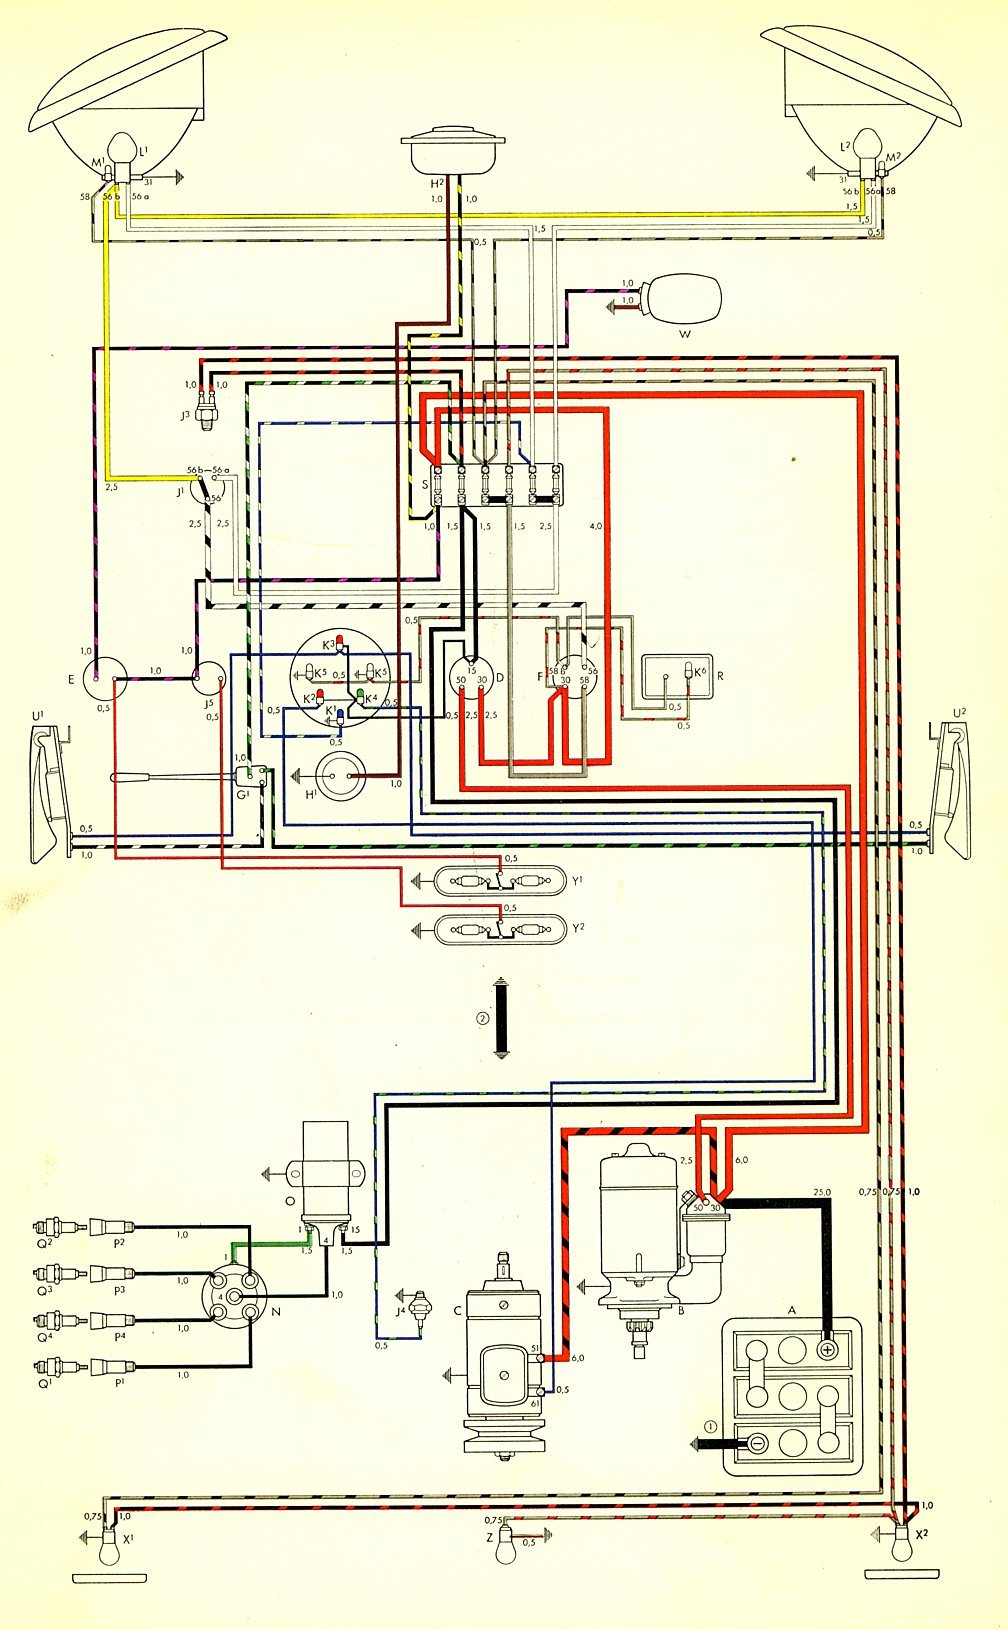 Type 2 Wiring Diagrams Radio Harness Color Diagram On Wires